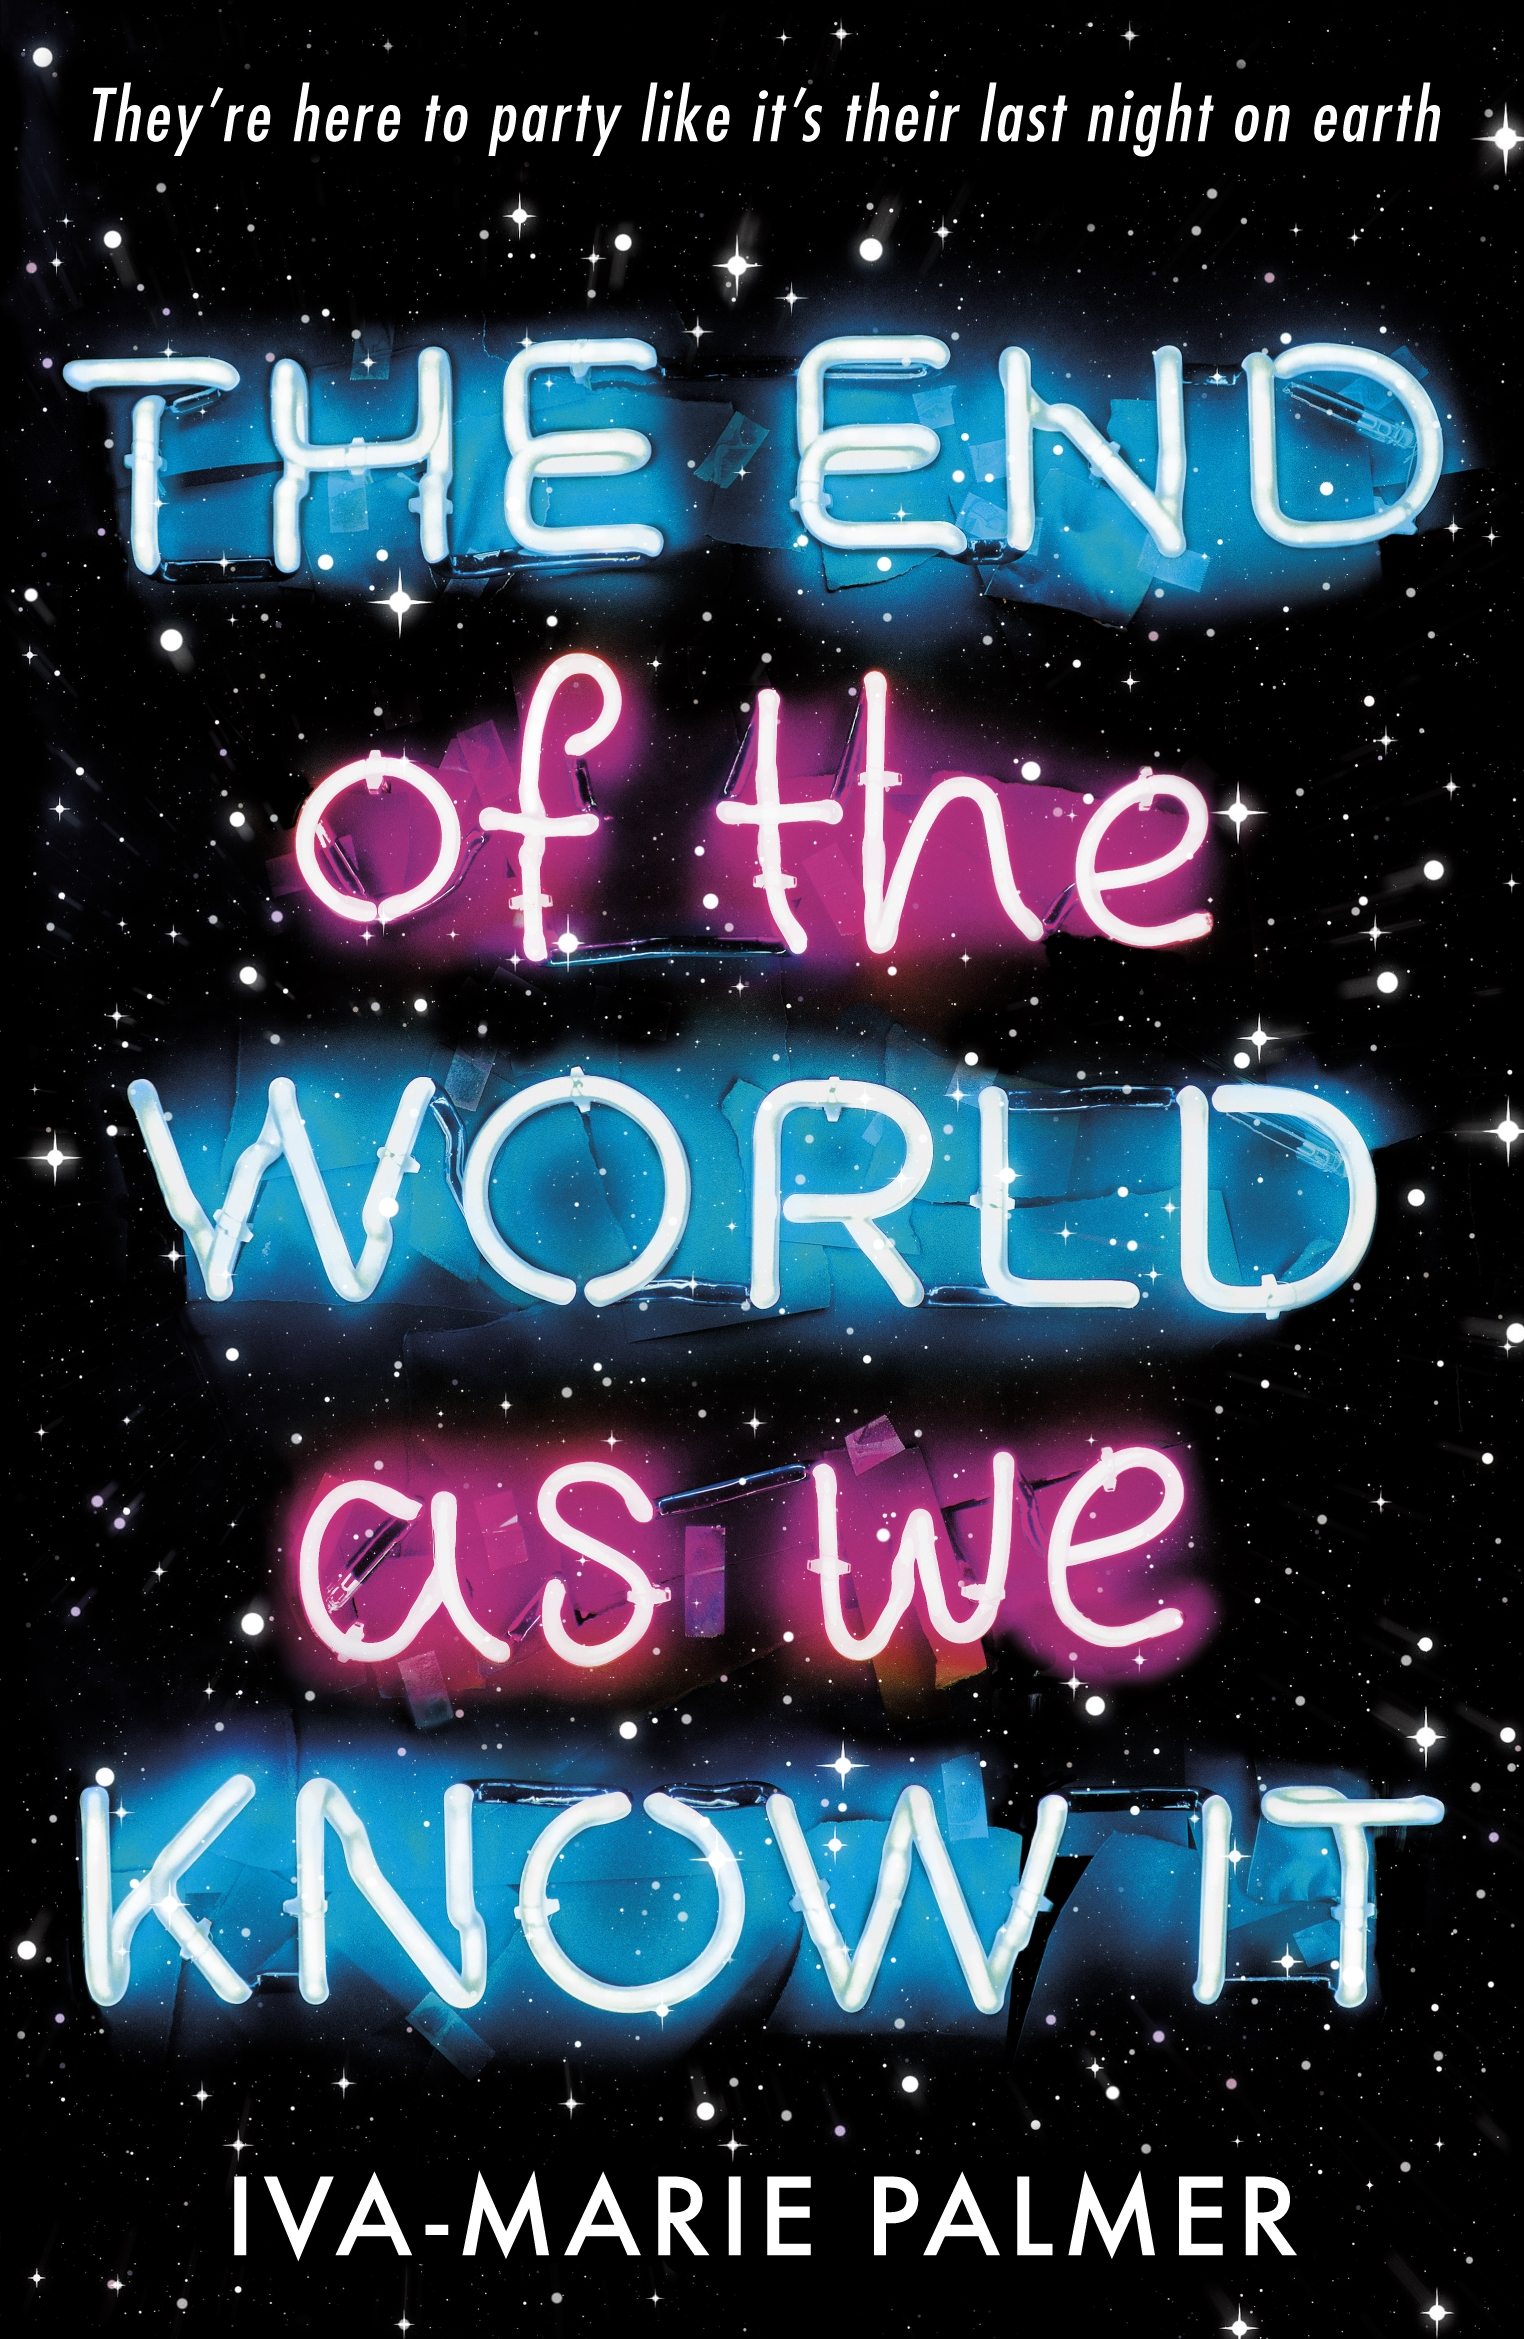 The End of the World As We Know It by Iva-Marie Palmer